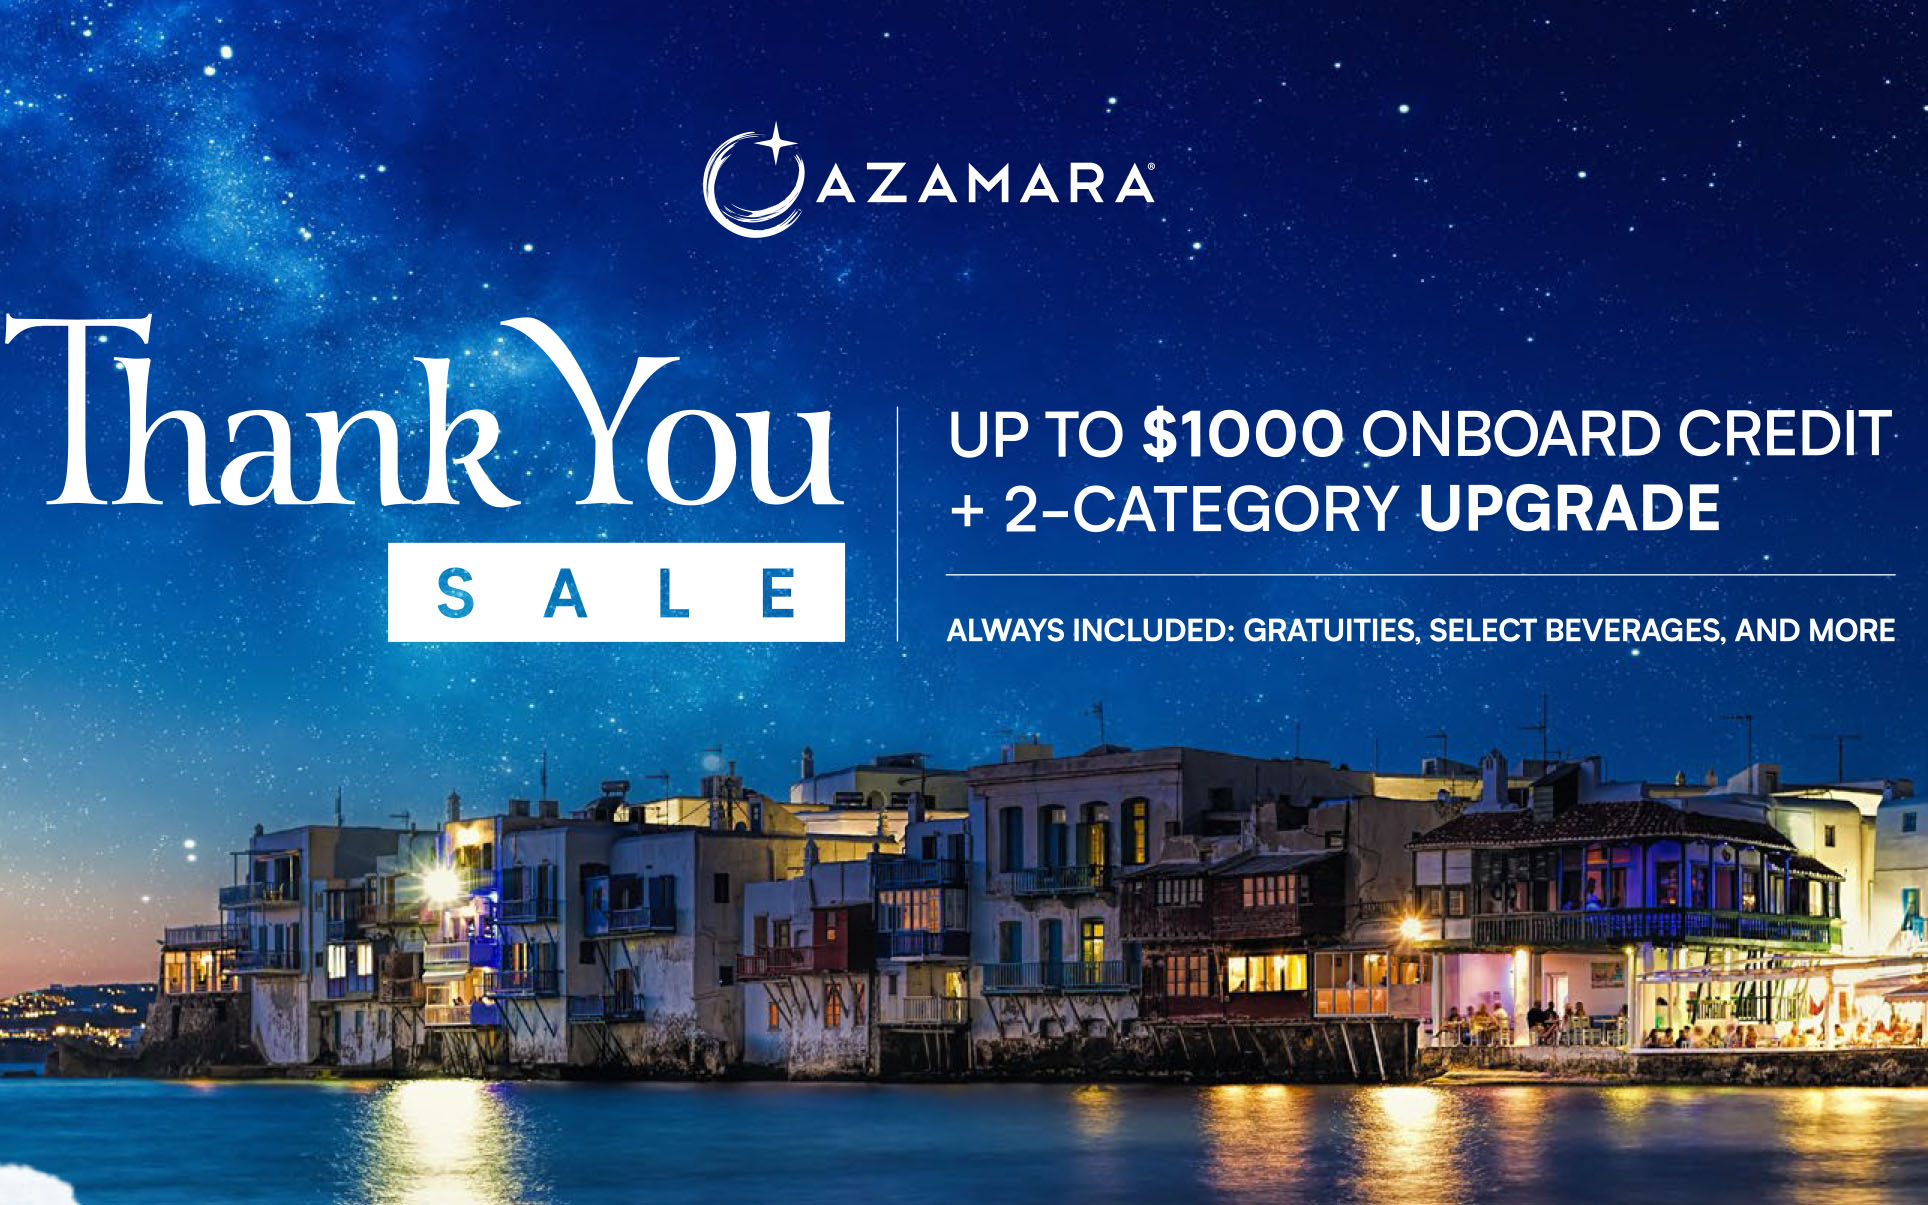 Azamara Thank You Sale - Up to $1,000 Onboard Credit + 2-Category Upgrade